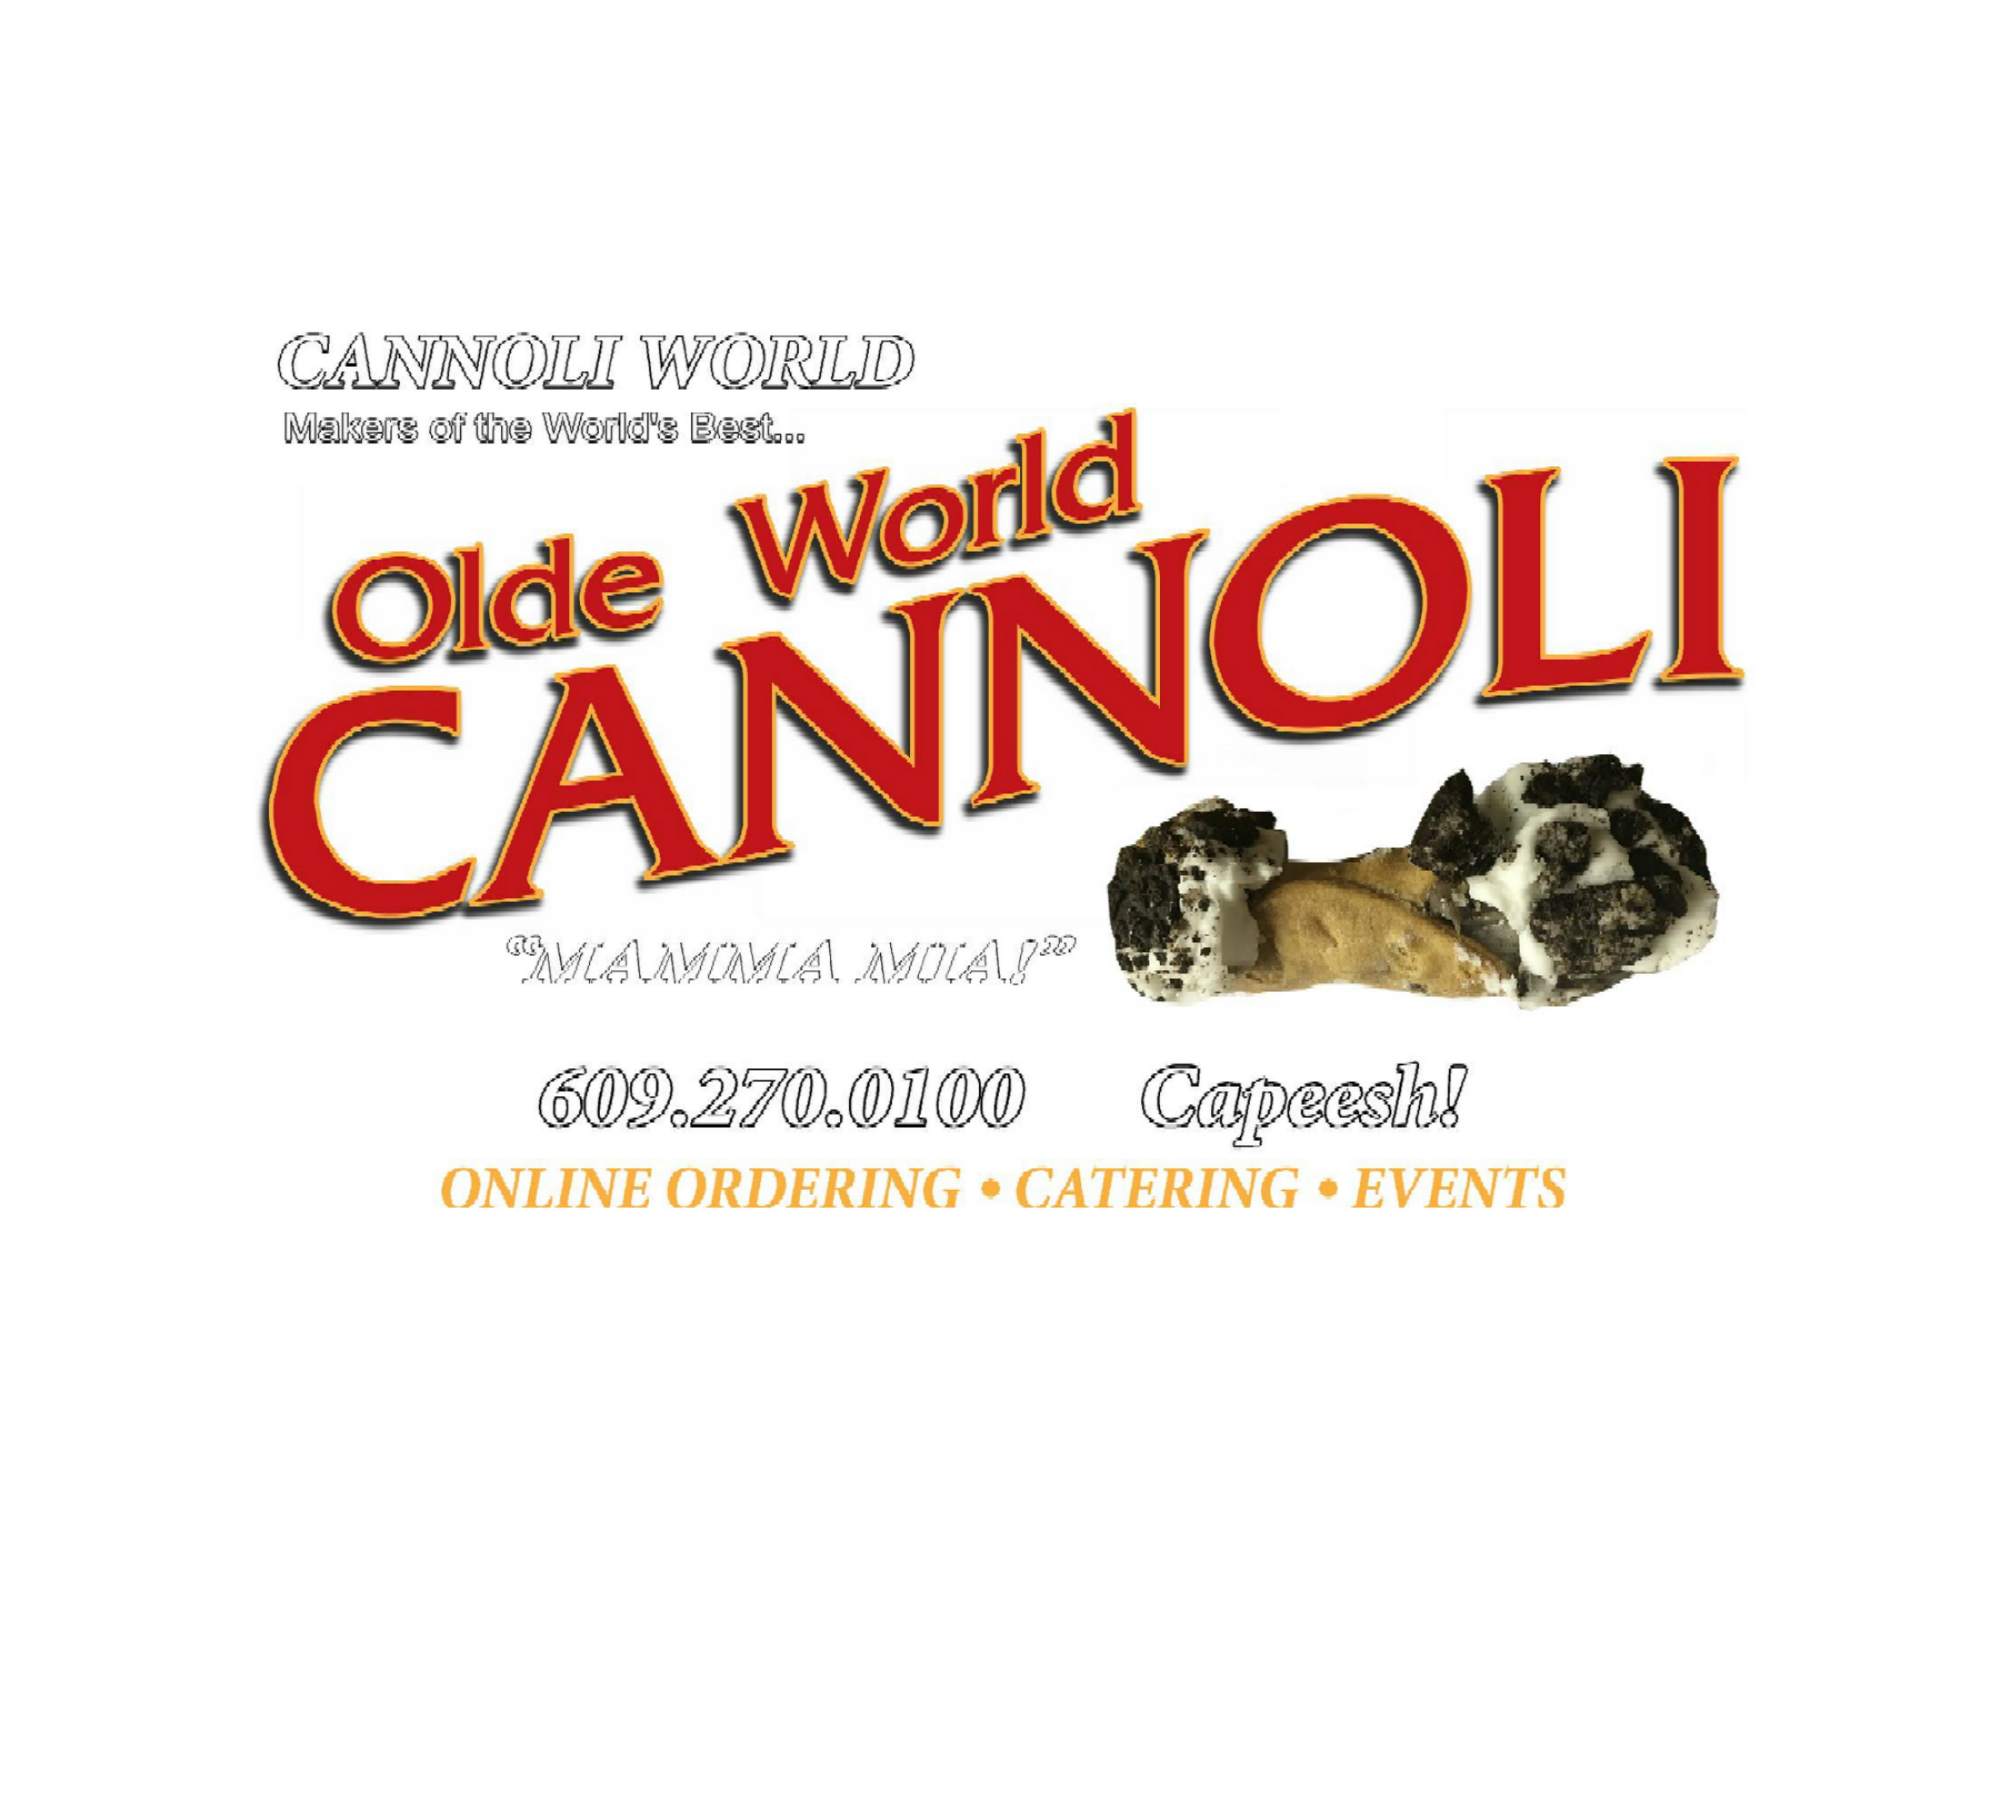 Cannoli World